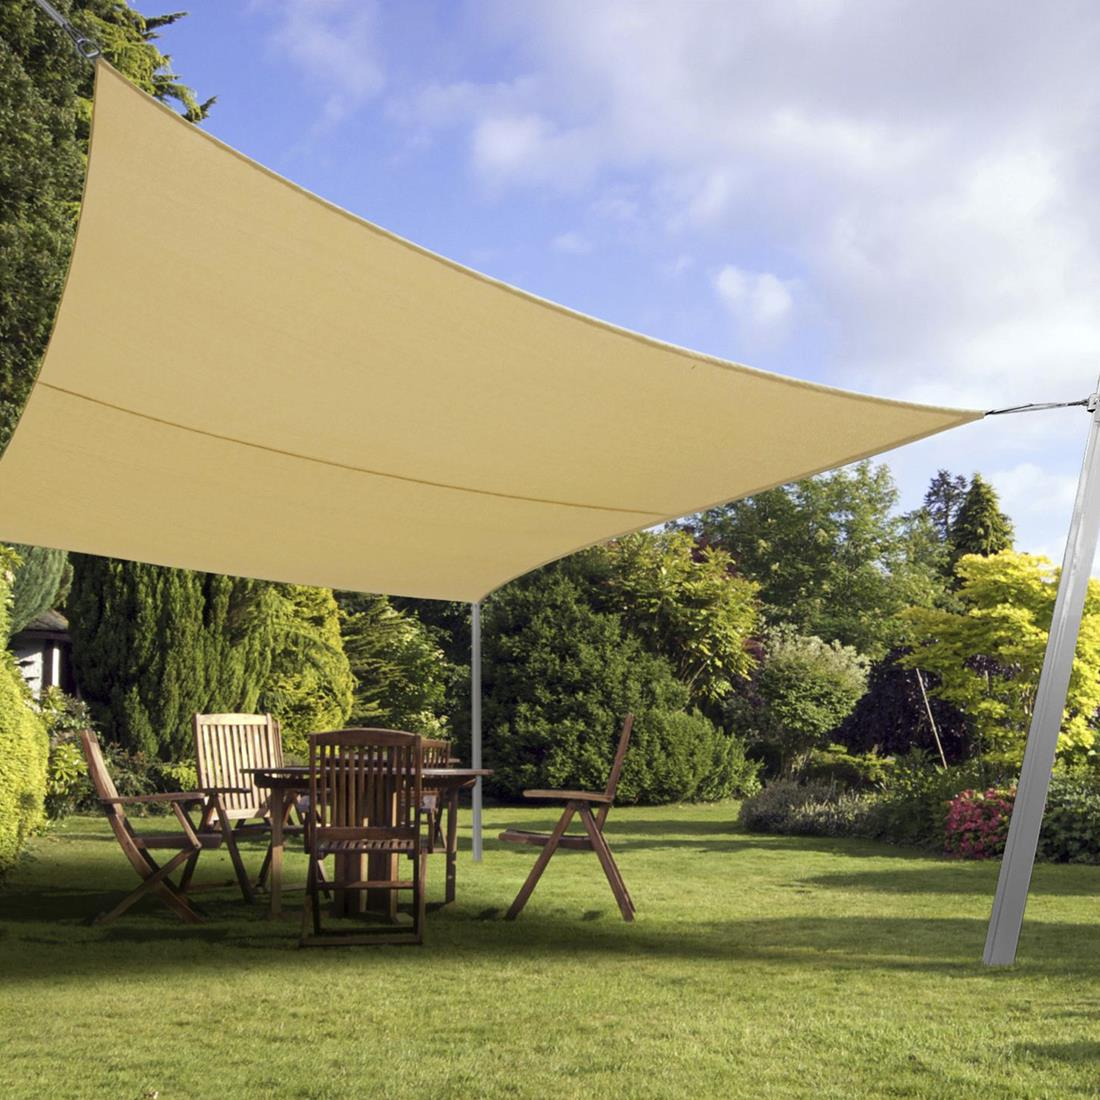 Quictent 24 X 24 FT Square Sun Shade Sail Outdoor Patio ...